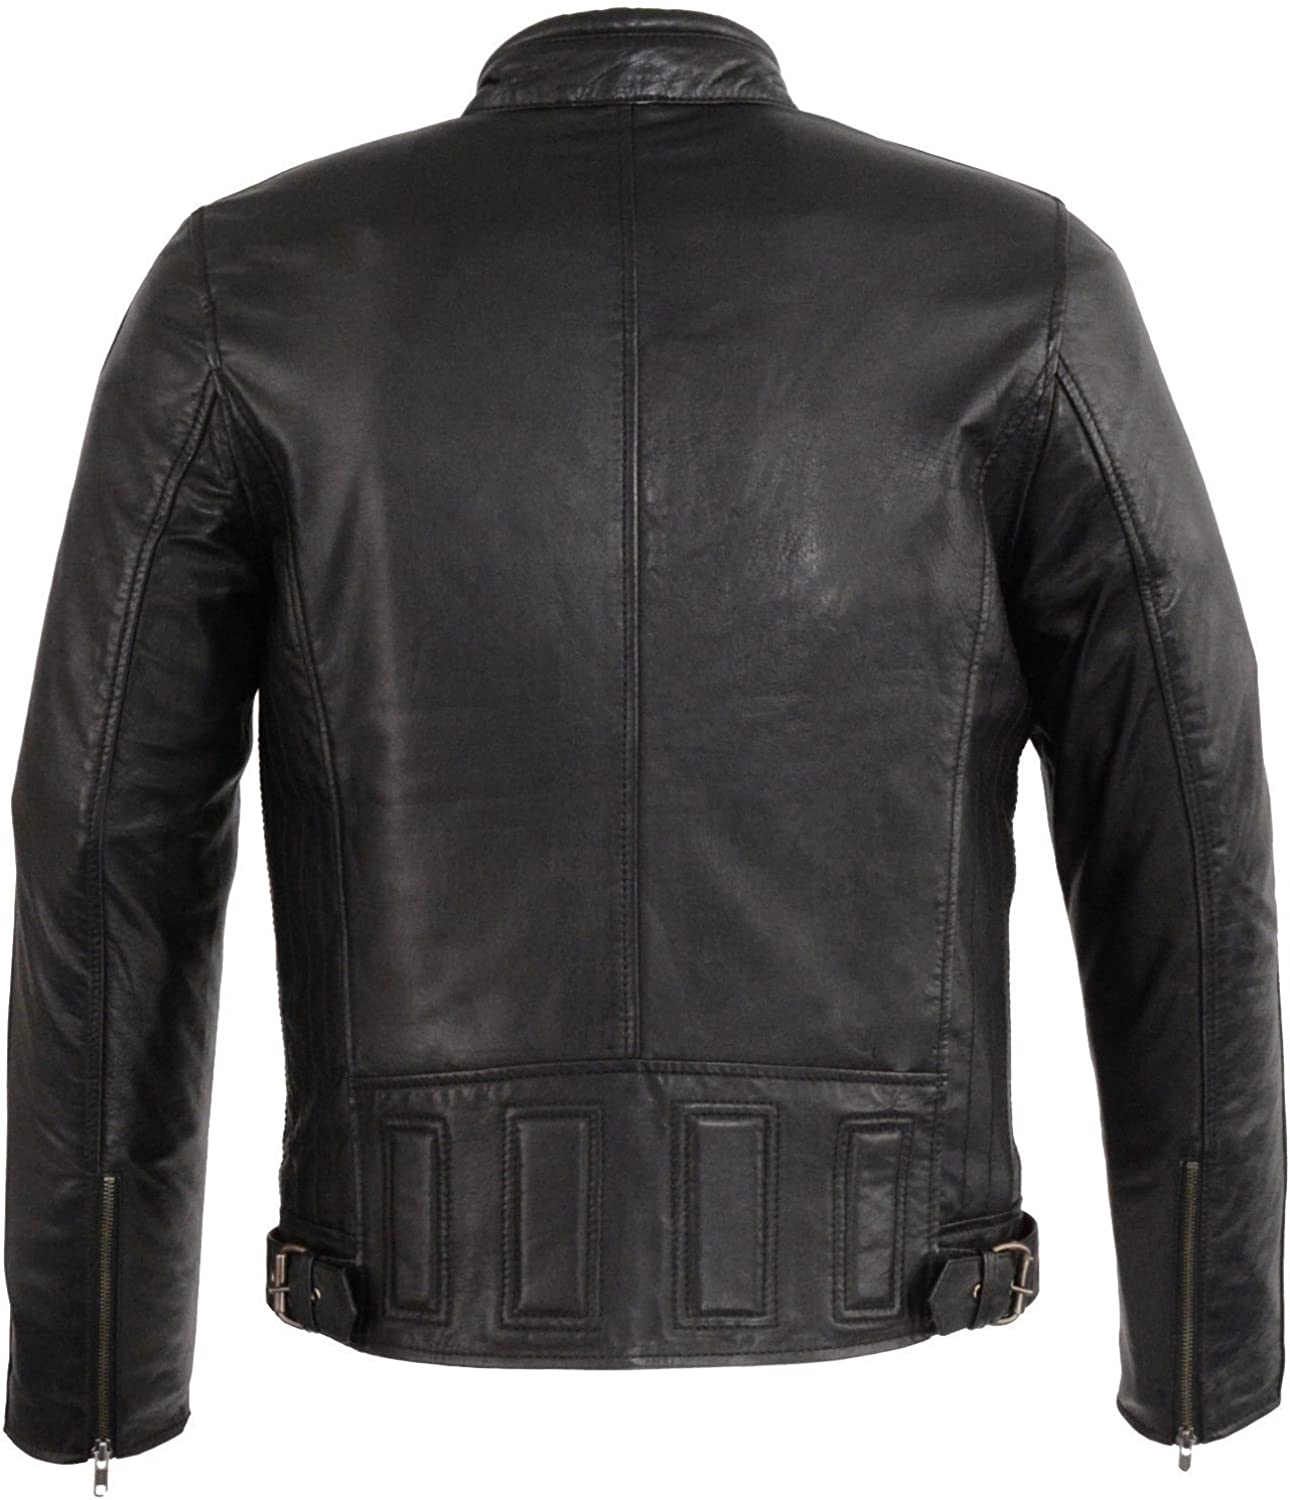 Mens Fashion blk Classic Butter Soft Winter Spring Warm Leather Jacket New S